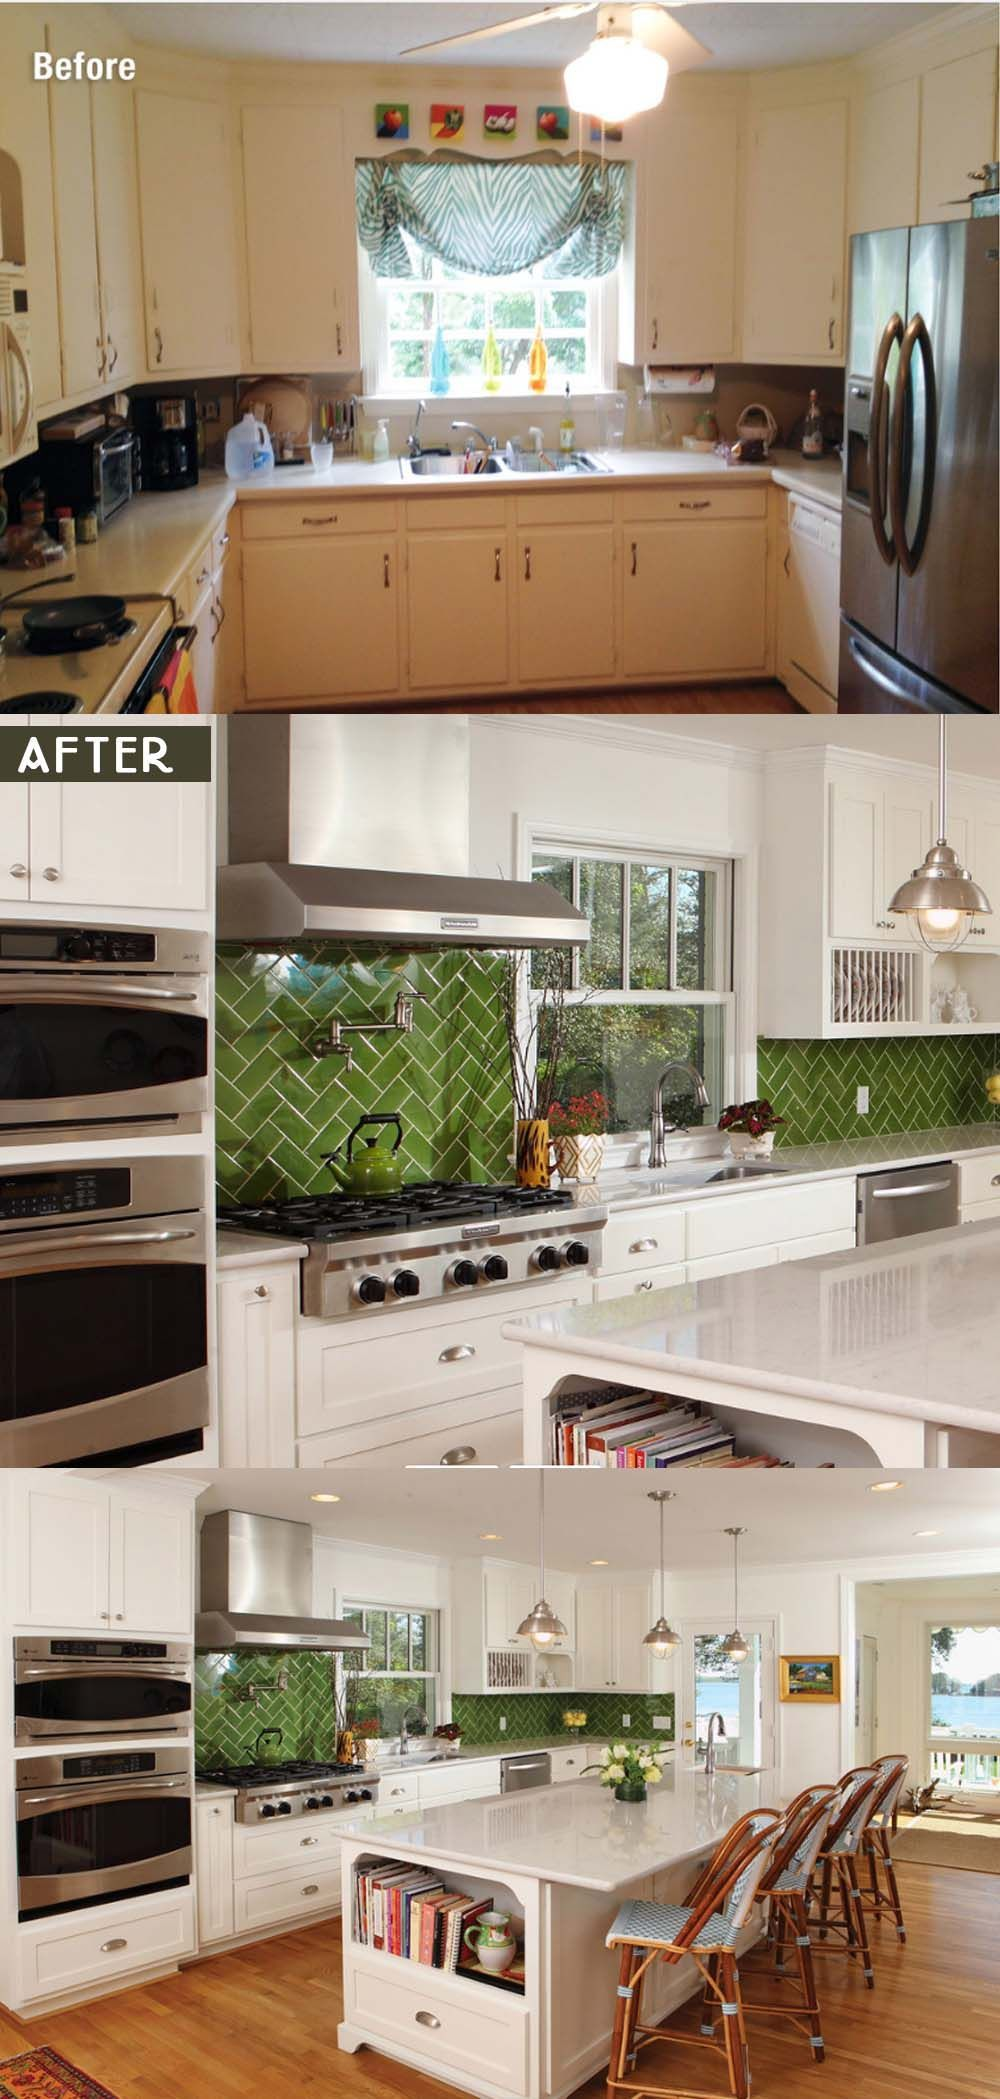 Getting Kitchen Remodel Ideas from many sources is essential. It gives a picture of how the homeowners plan to decide their future kitchen.   #kitchenideas #kitchenremodel #kitchentrends #2020 #cheap #beforeandafter #modern #ideas #tips #kitchendesign #kitchencost #kitchenbudget